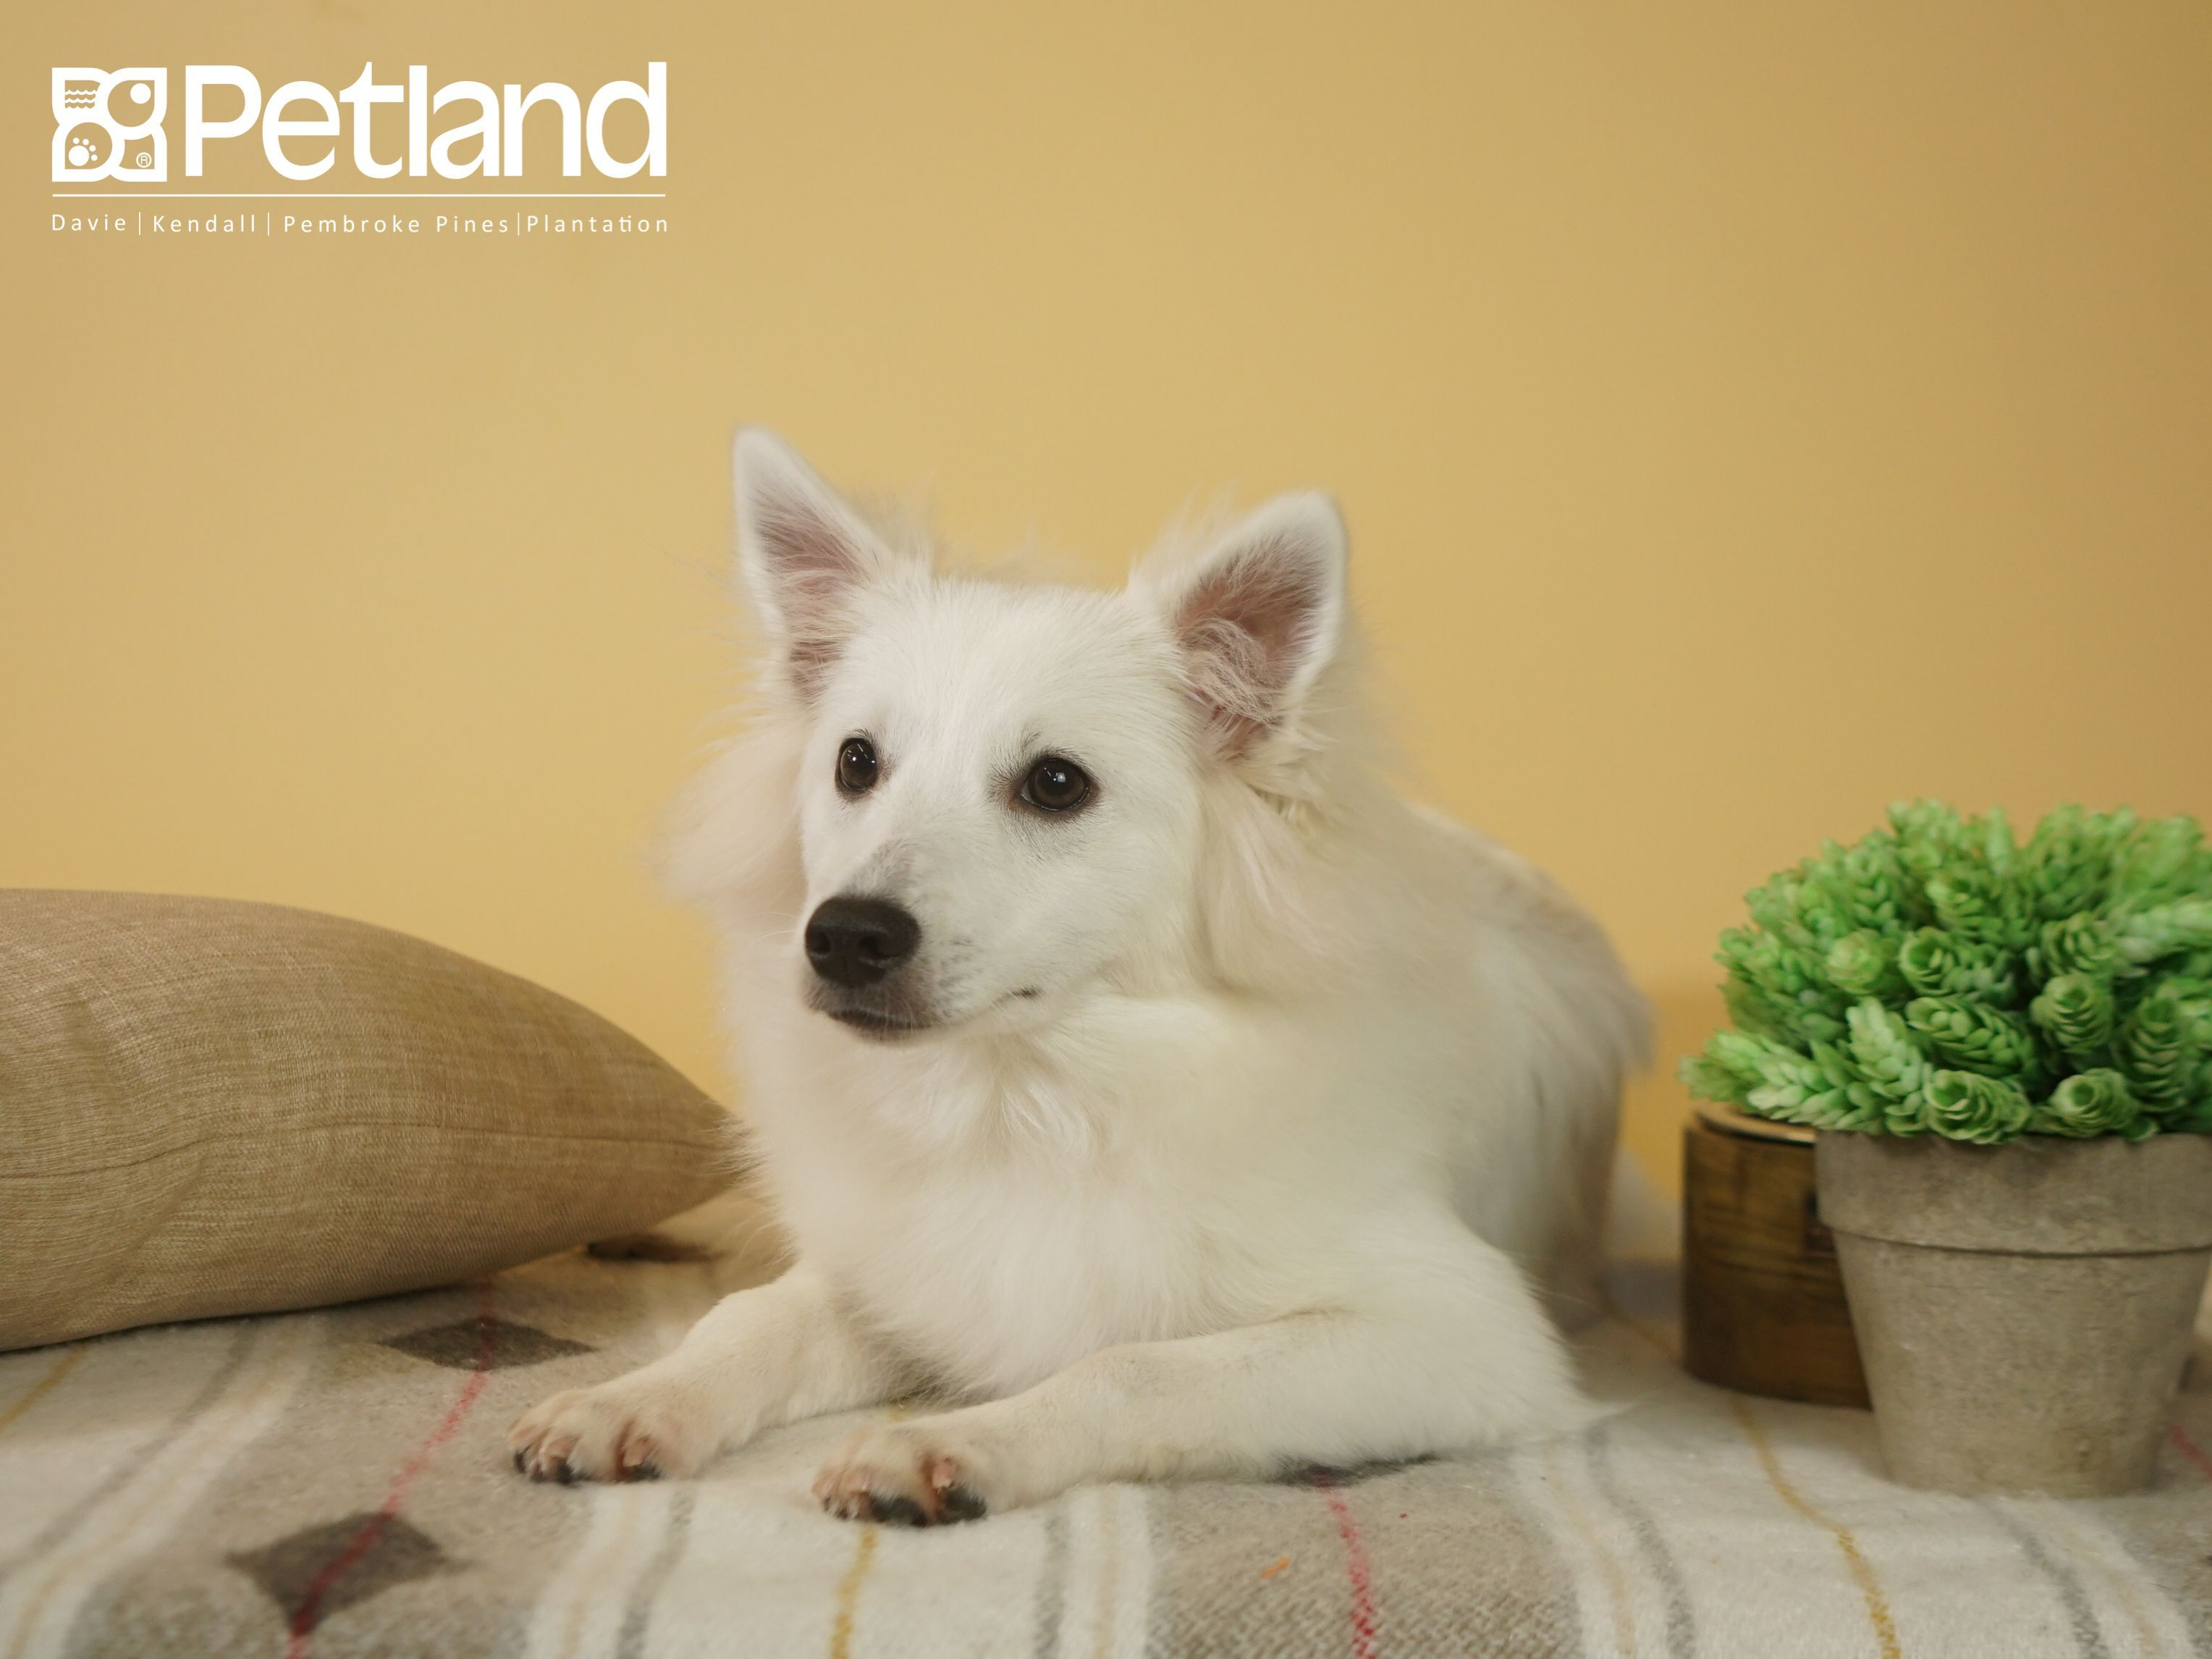 Petland Florida Has Kleekimo Puppies For Sale Check Out All Our Available Puppies Kleekimo Puppy Doglover Adorable Do Puppy Friends Dog Lovers Puppies